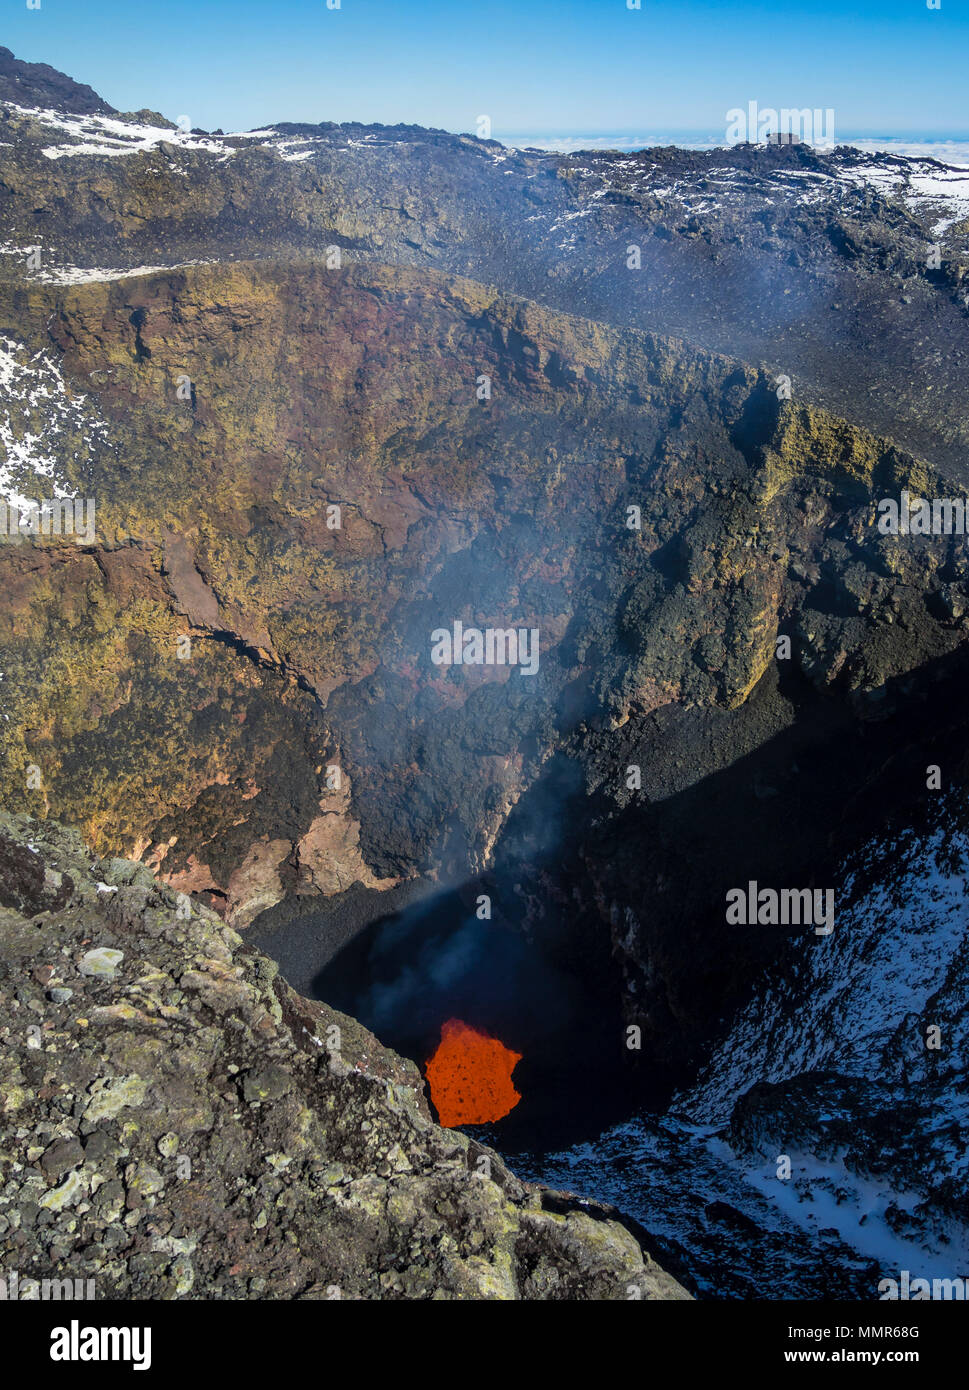 View into the crater of volcano Villarica, red magma, lava,eruptions,   Chile - Stock Image